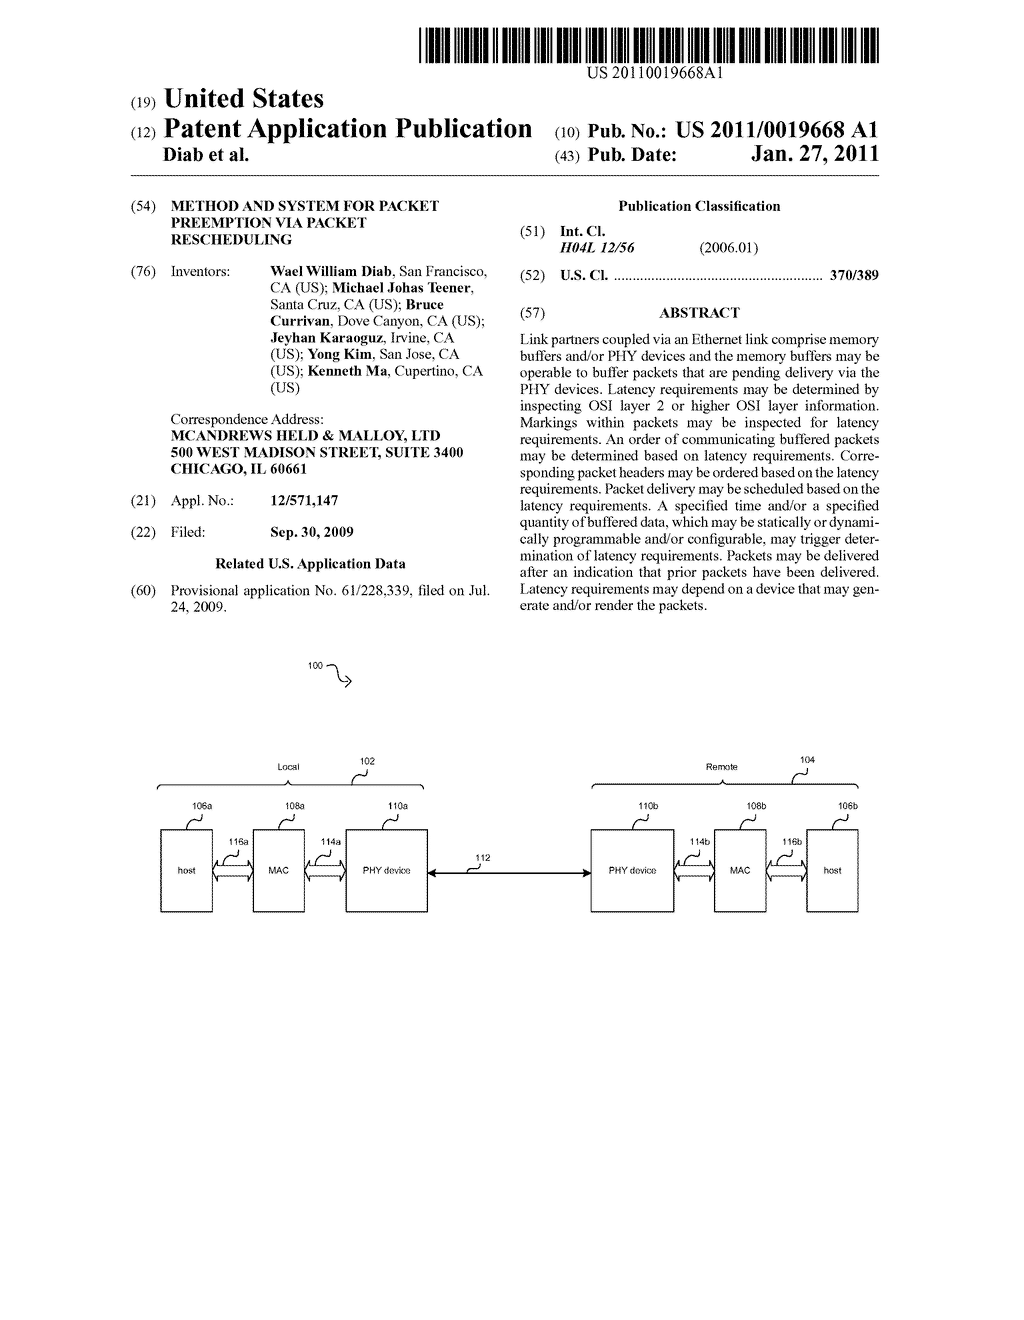 Method And System For Packet Preemption Via Packet Rescheduling - diagram, schematic, and image 01